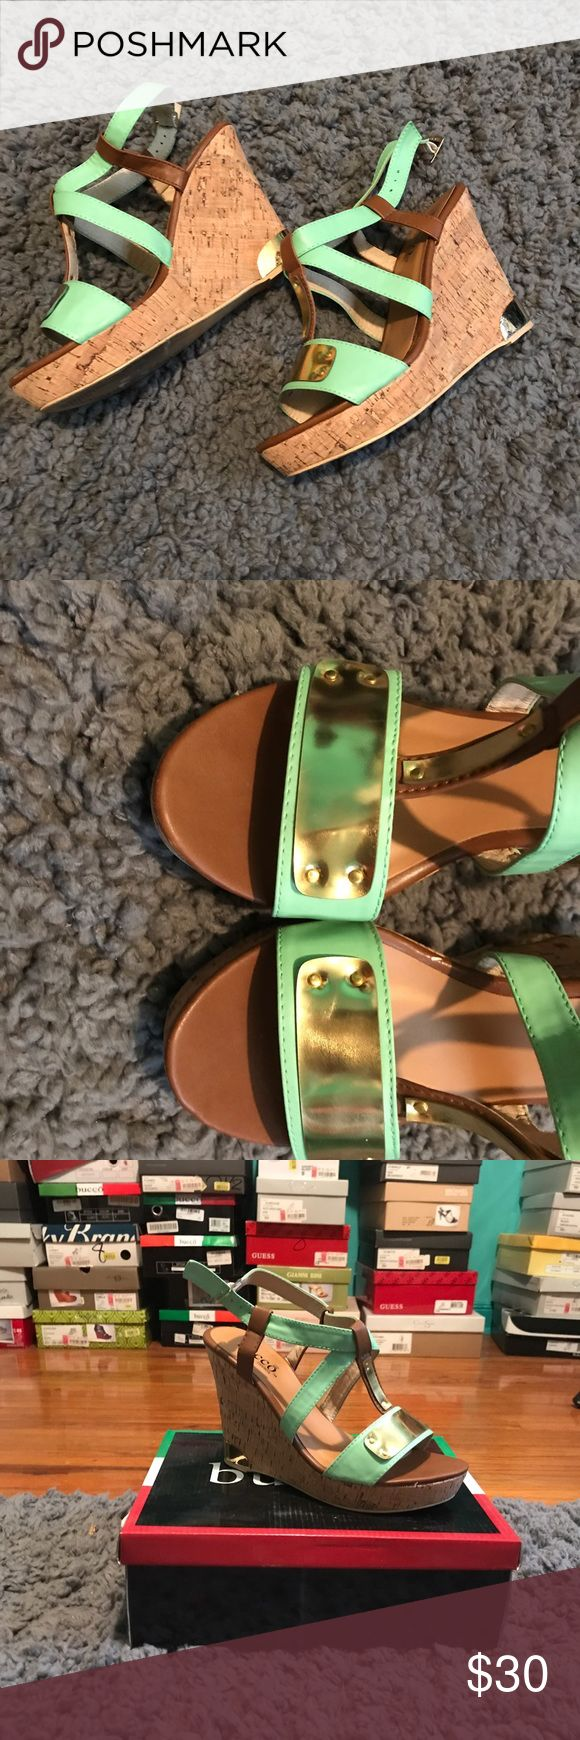 Mint green wedge sandal Worn once. Very comfortable! Bucco Shoes Wedges